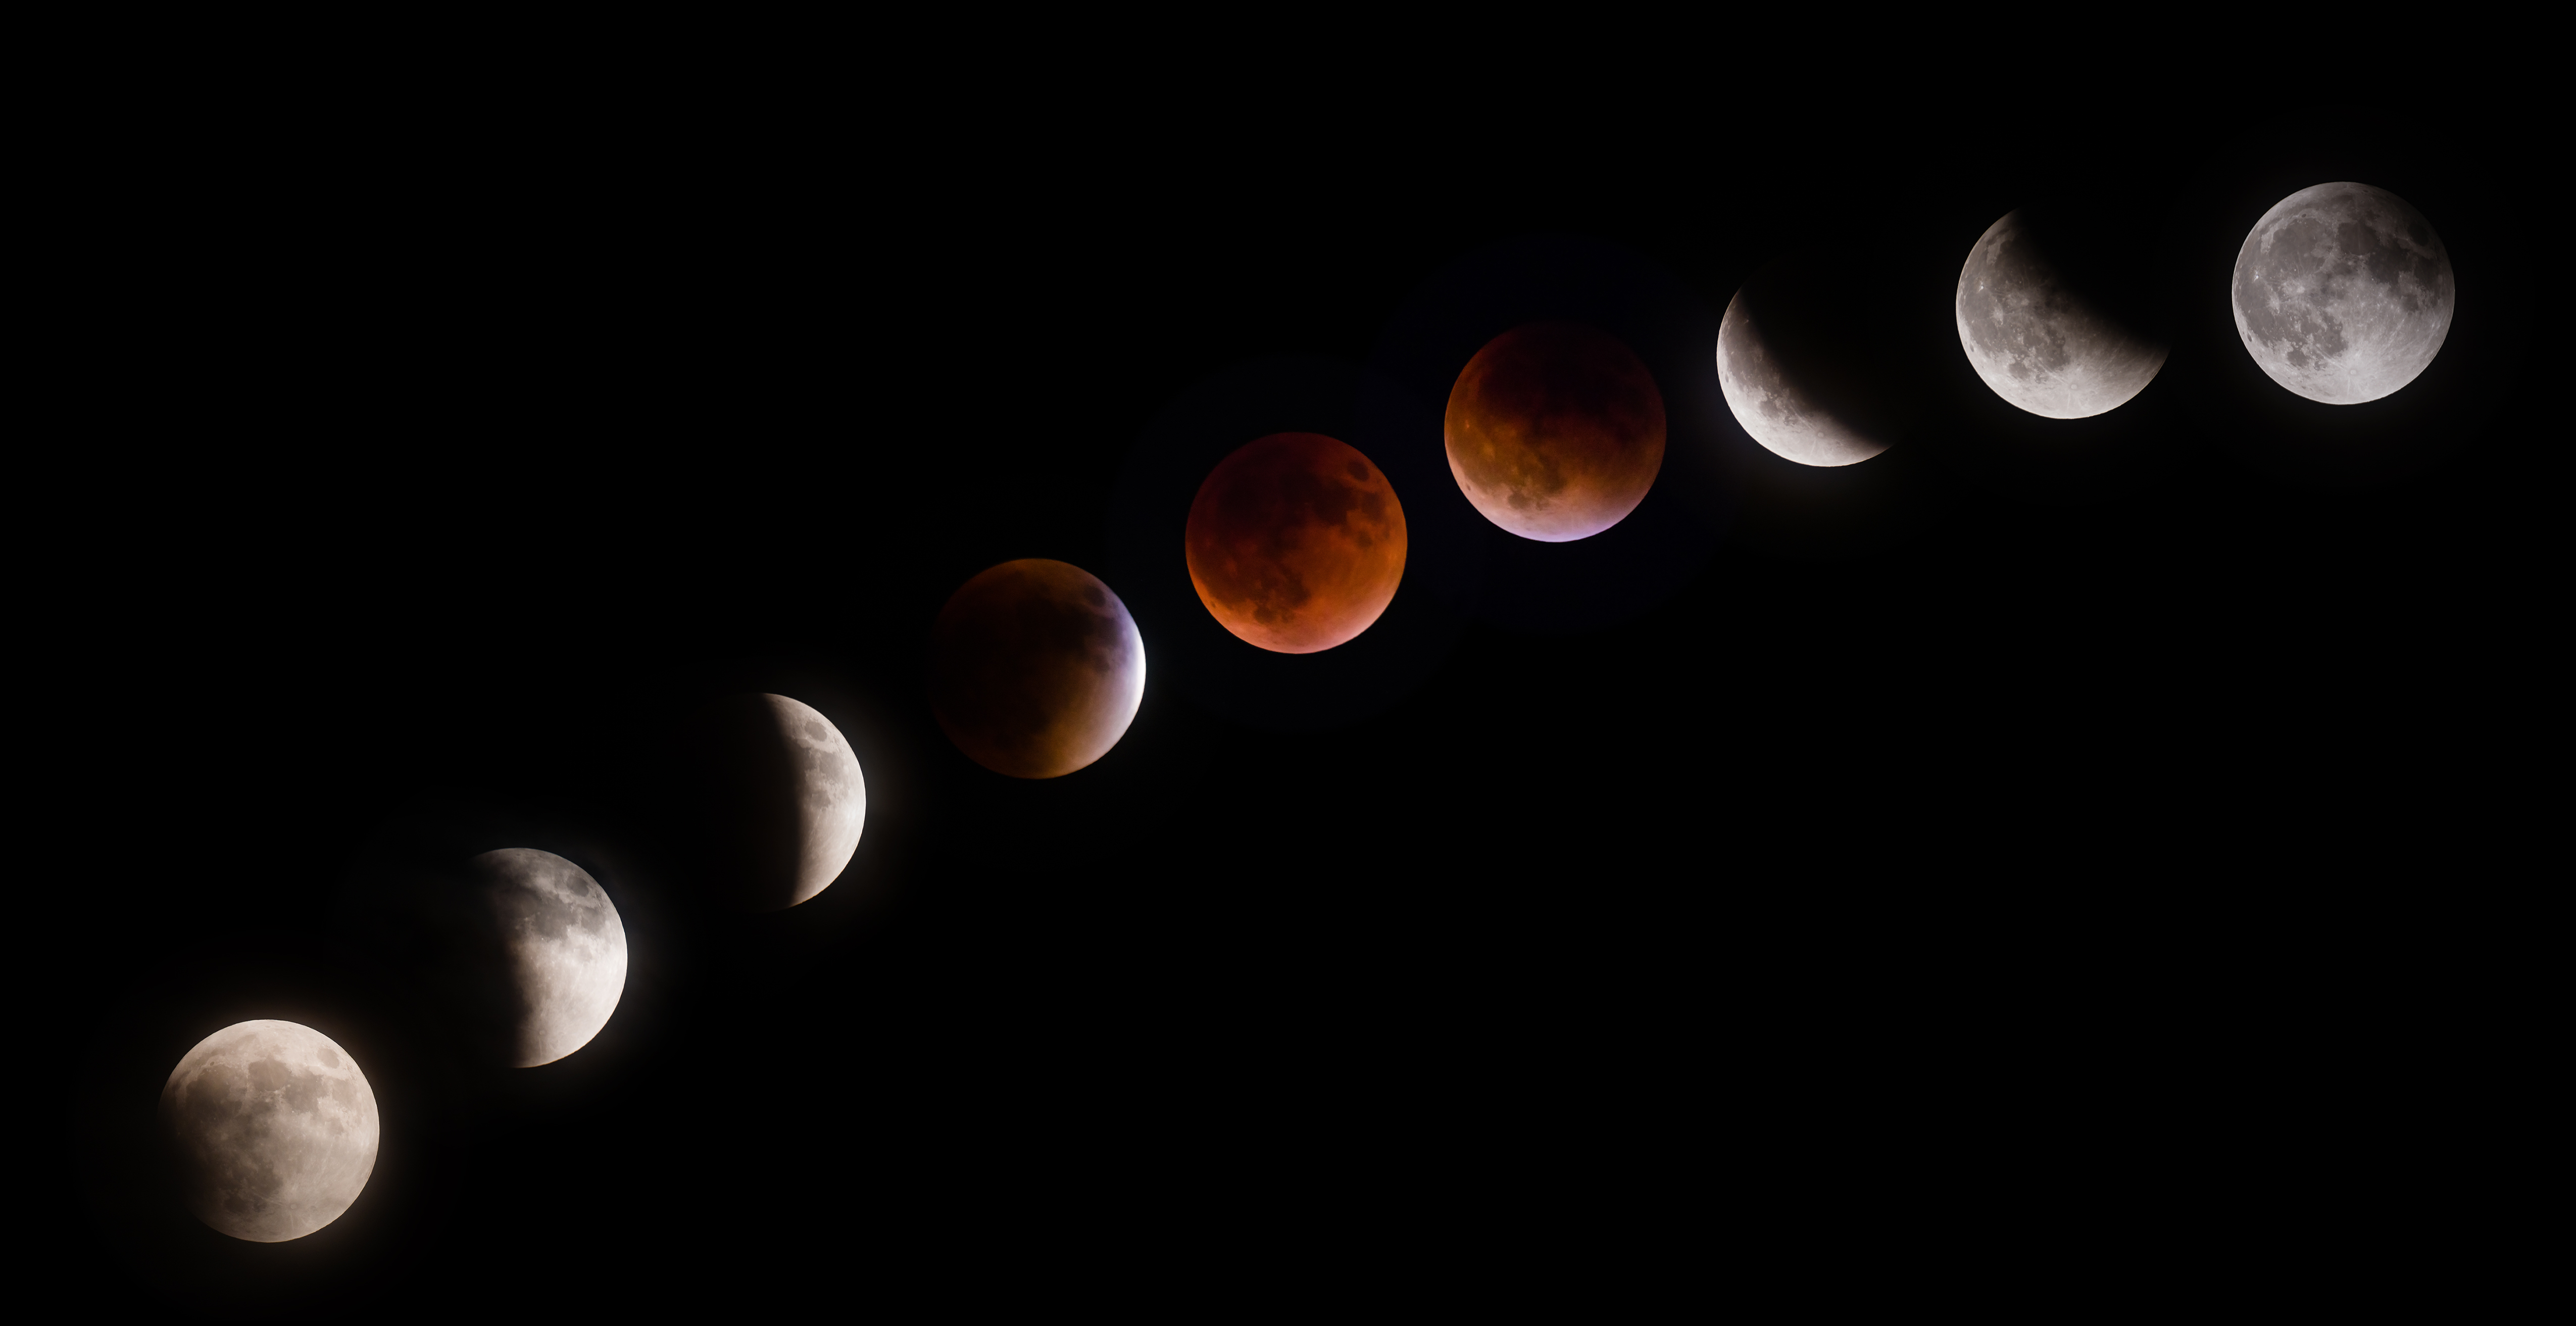 Total Supermoon lunar eclipse, also known as a Blood Moon.